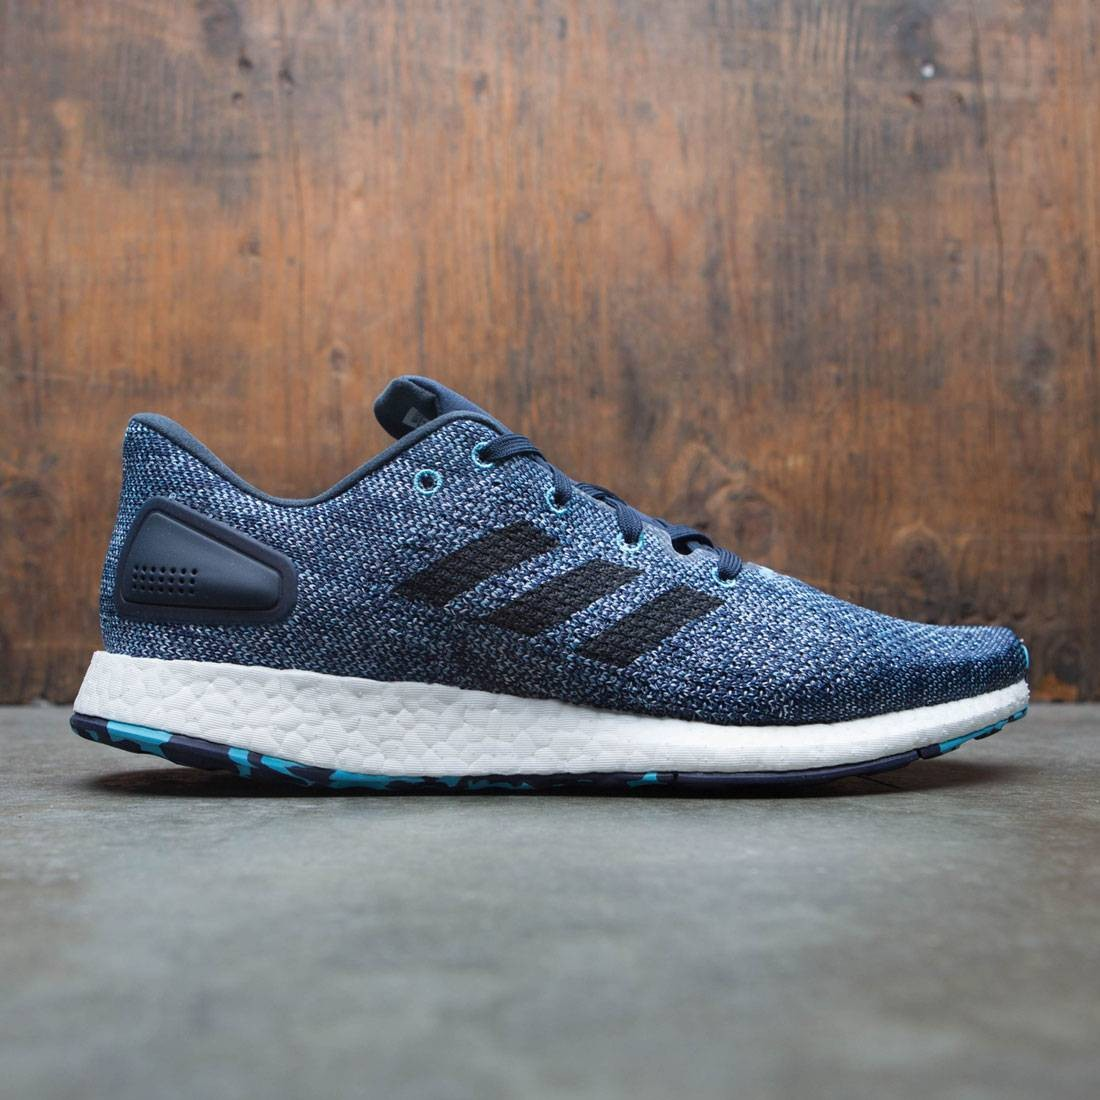 0cc1a4e4d29e90 Adidas Men PureBOOST DPR LTD white core black vapor blue